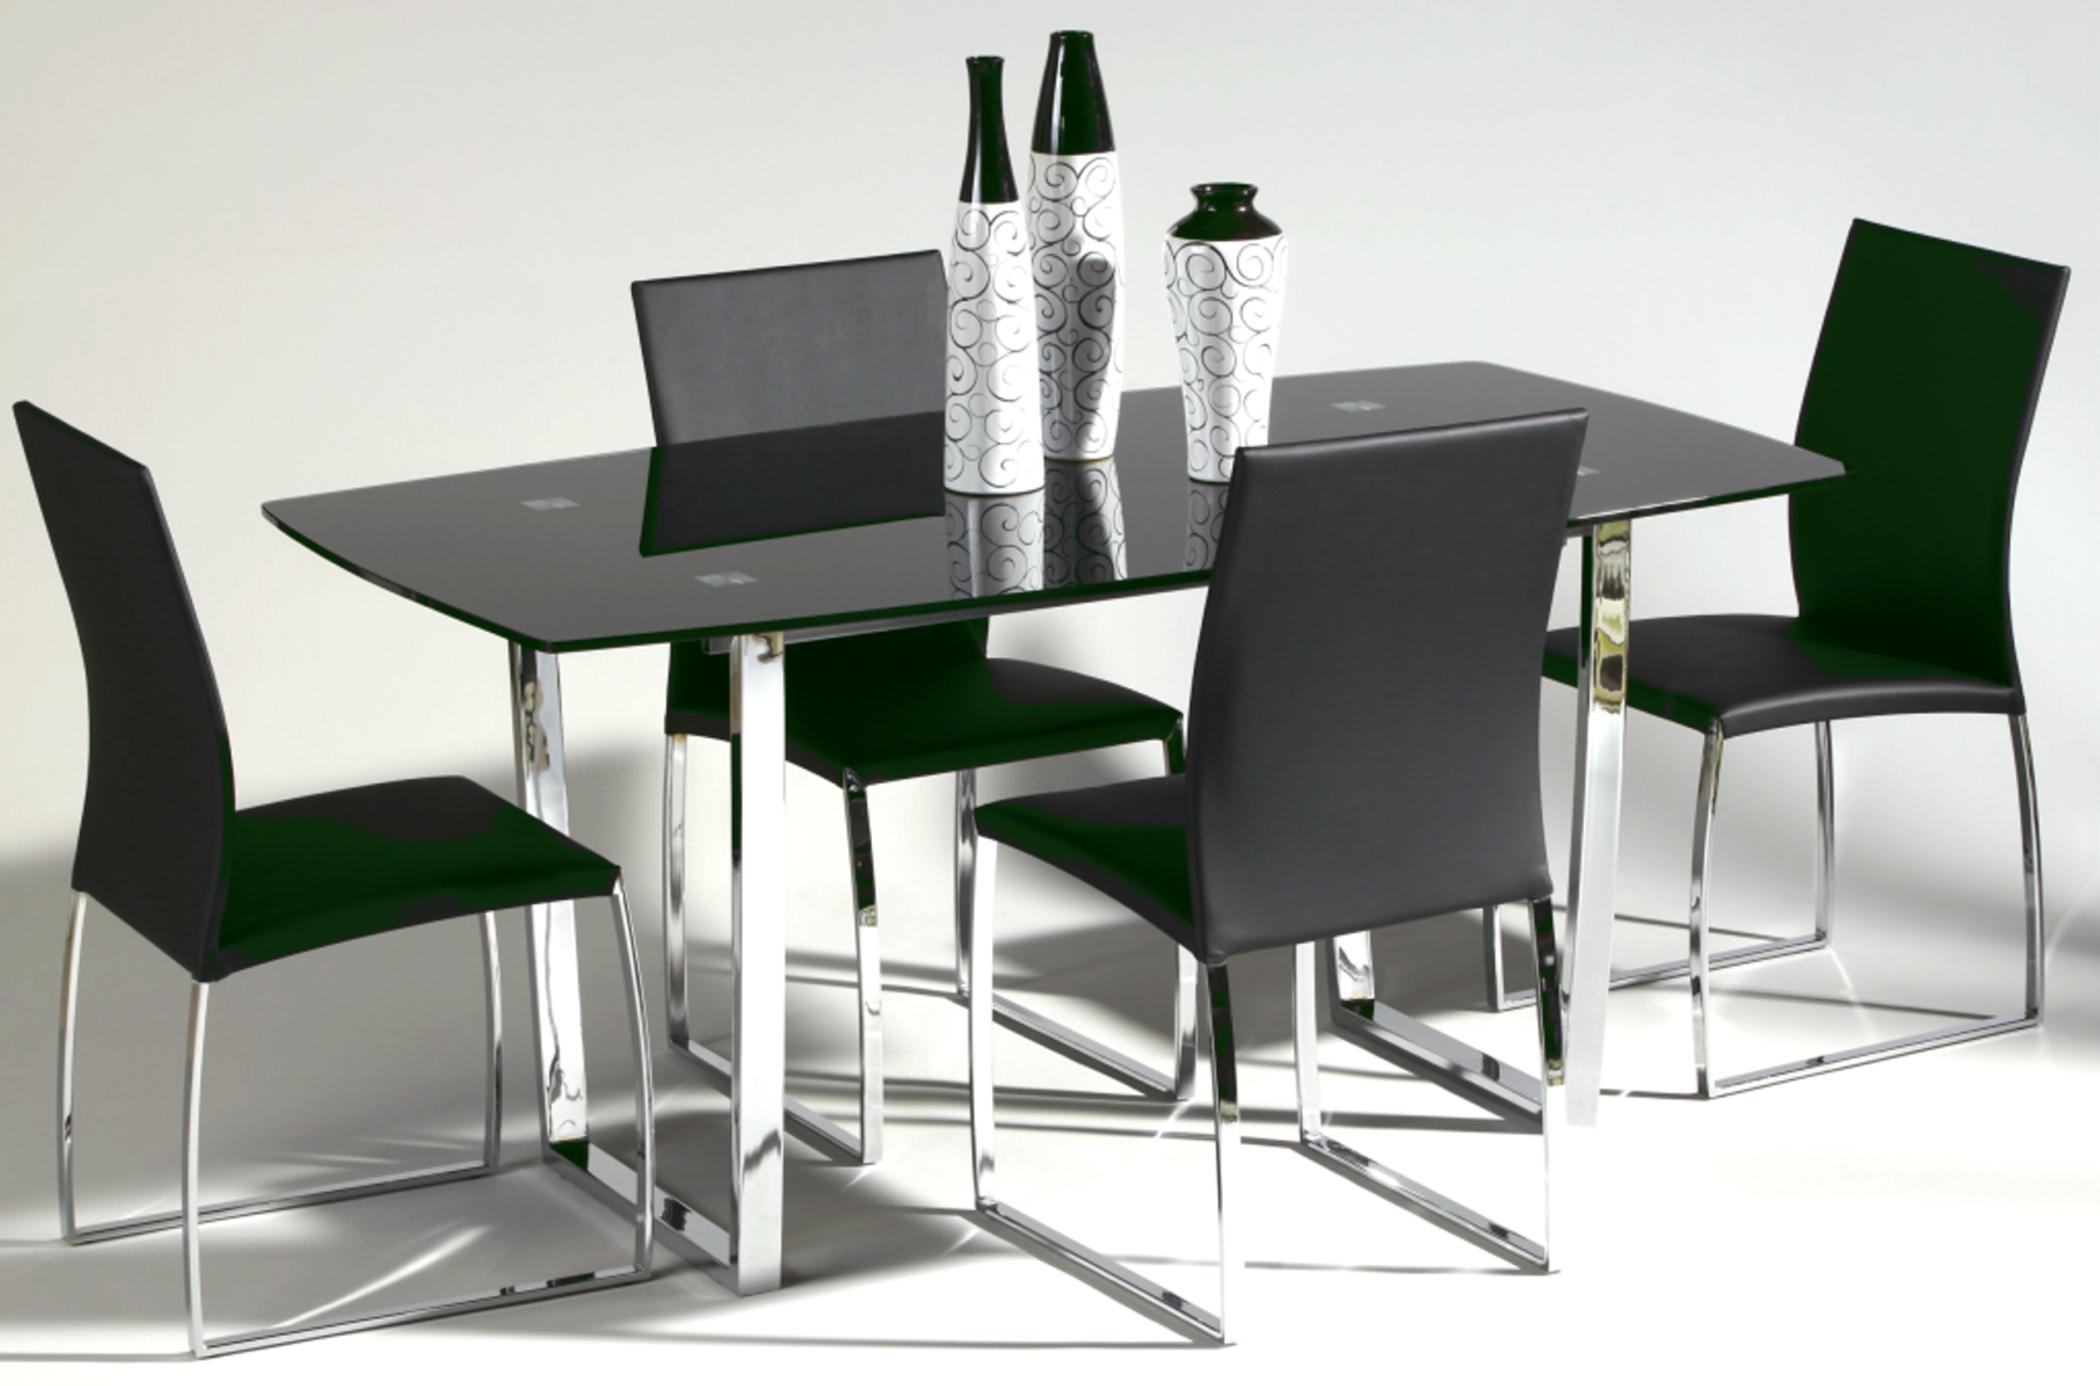 Marcy 5-Piece Glass Top Dining Set by Chintaly Imports at Nassau Furniture and Mattress